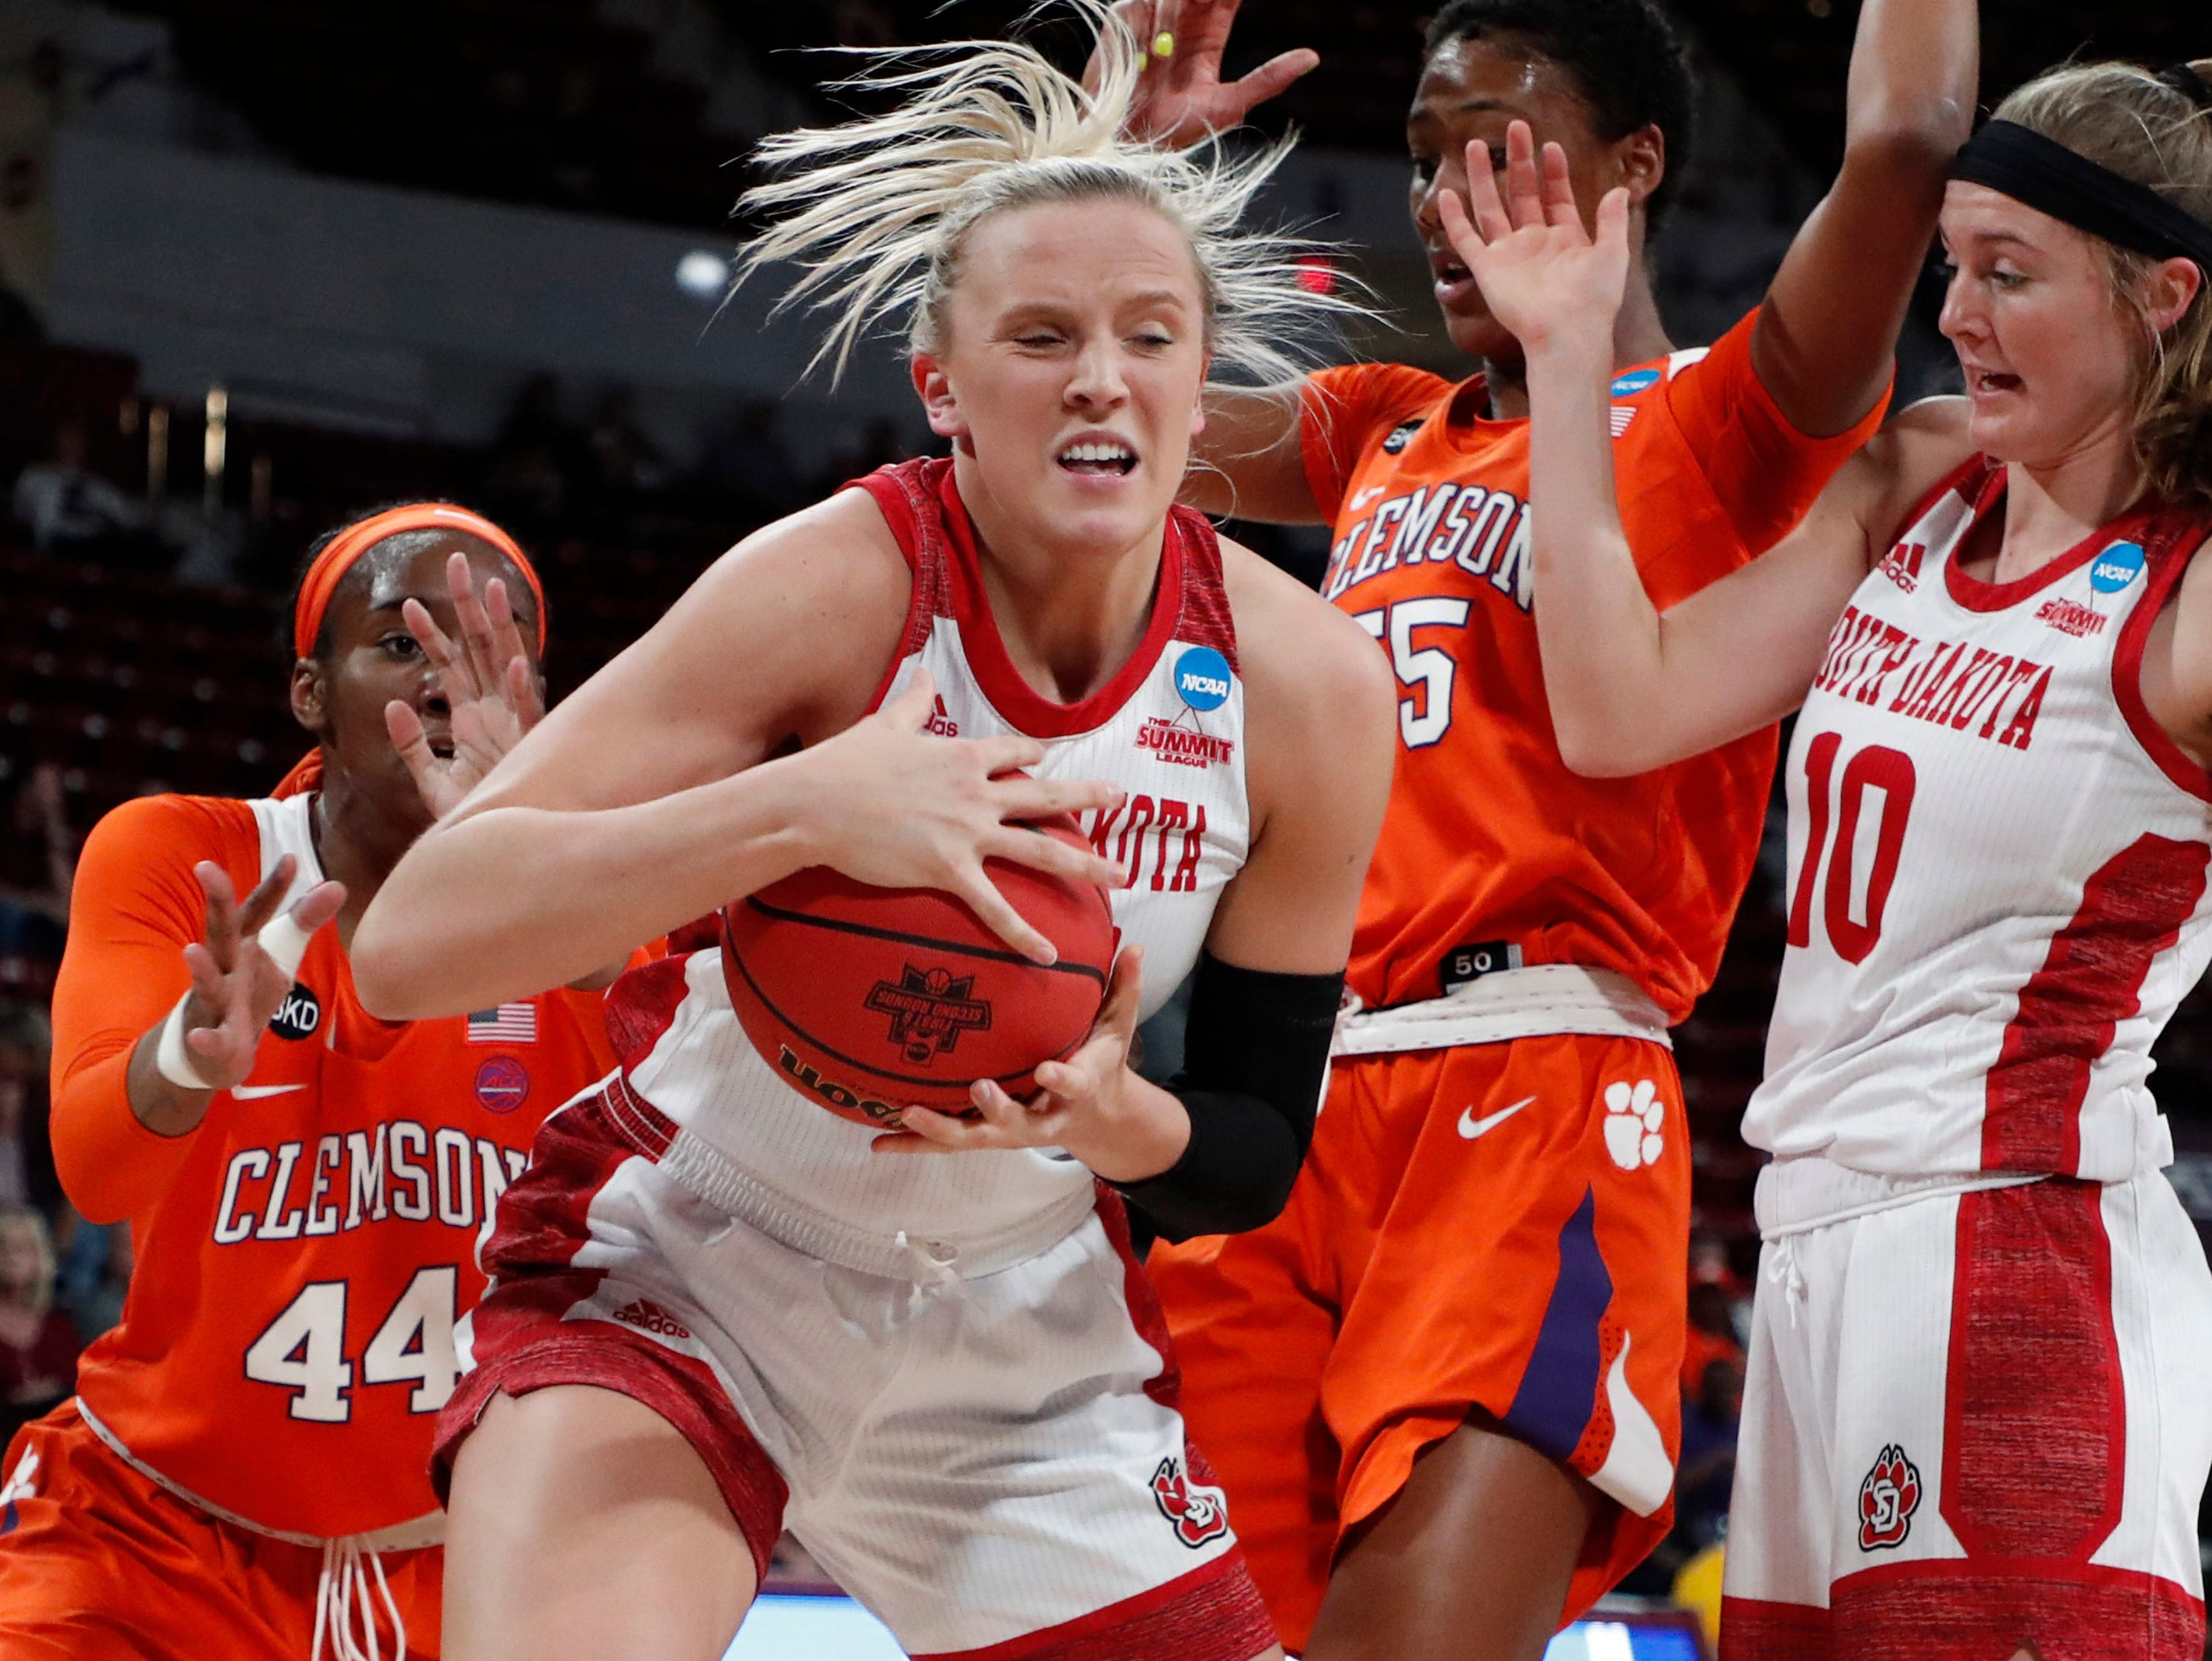 South Dakota center Hannah Sjerven, second from left, pulls down a rebound in front of Clemson center Kobi Thornton (44) and forward Tylar Bennett (55) during a first round women's college basketball game in the NCAA Tournament in Starkville, Miss., Friday, March 22, 2019. (AP Photo/Rogelio V. Solis)